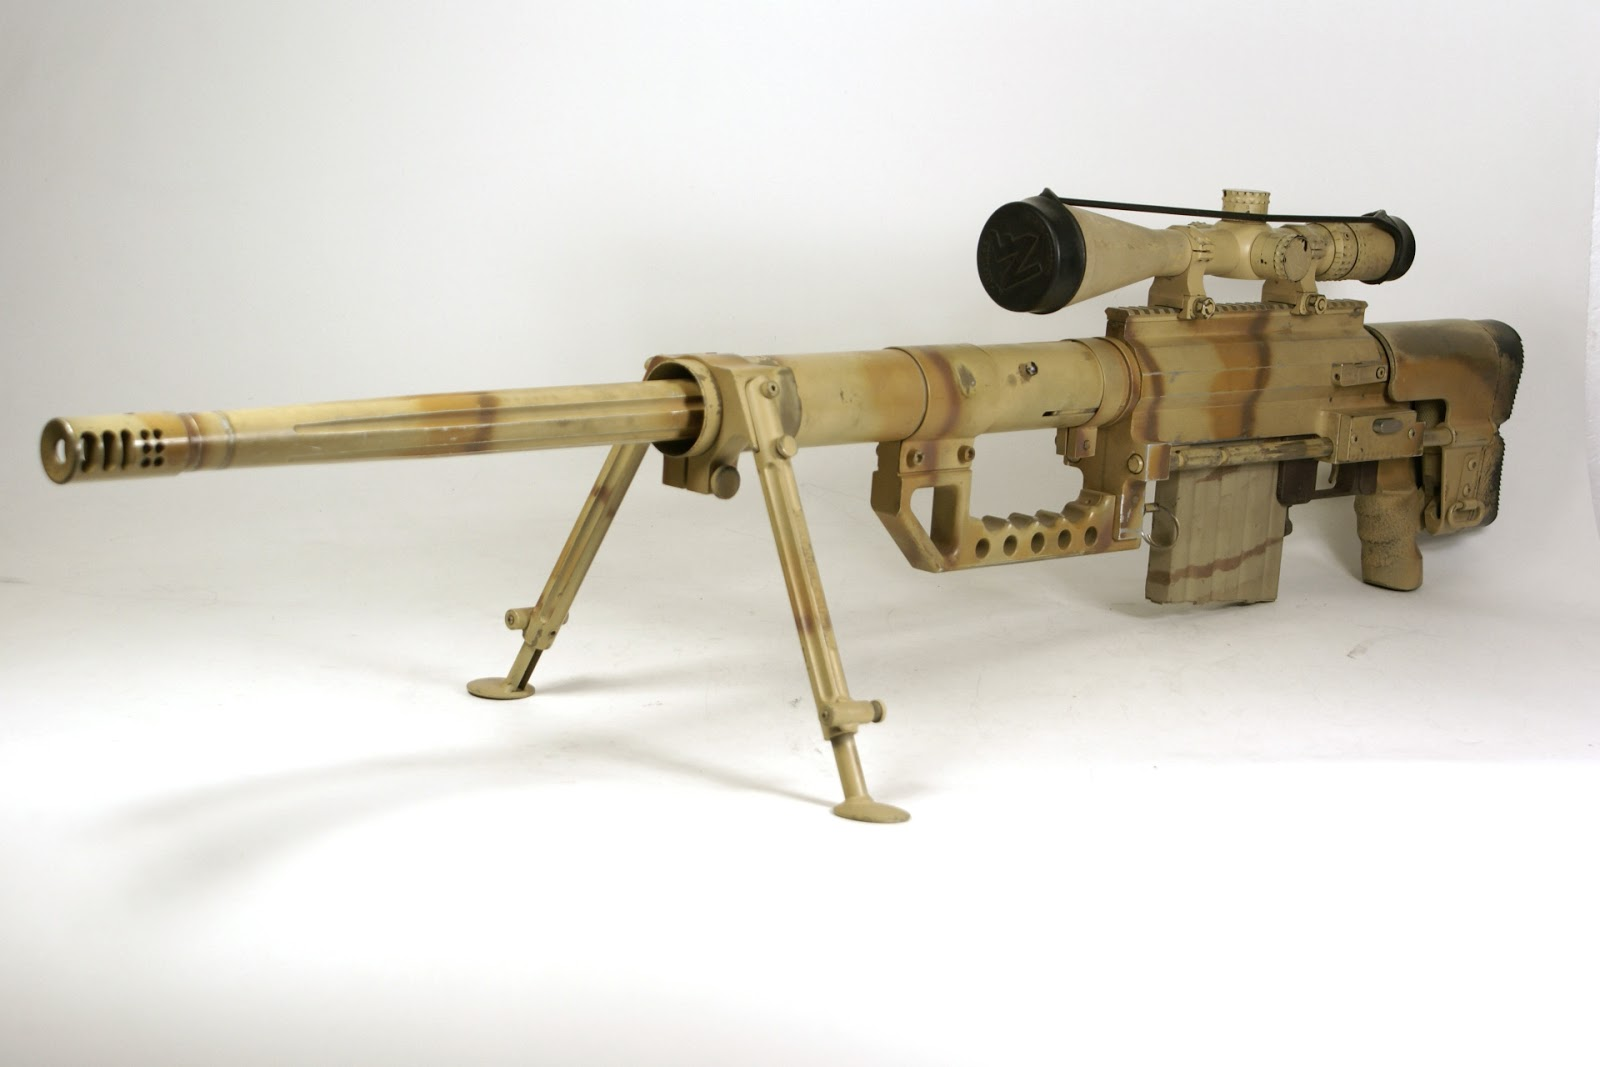 cheytac m200 lrss army and weapons